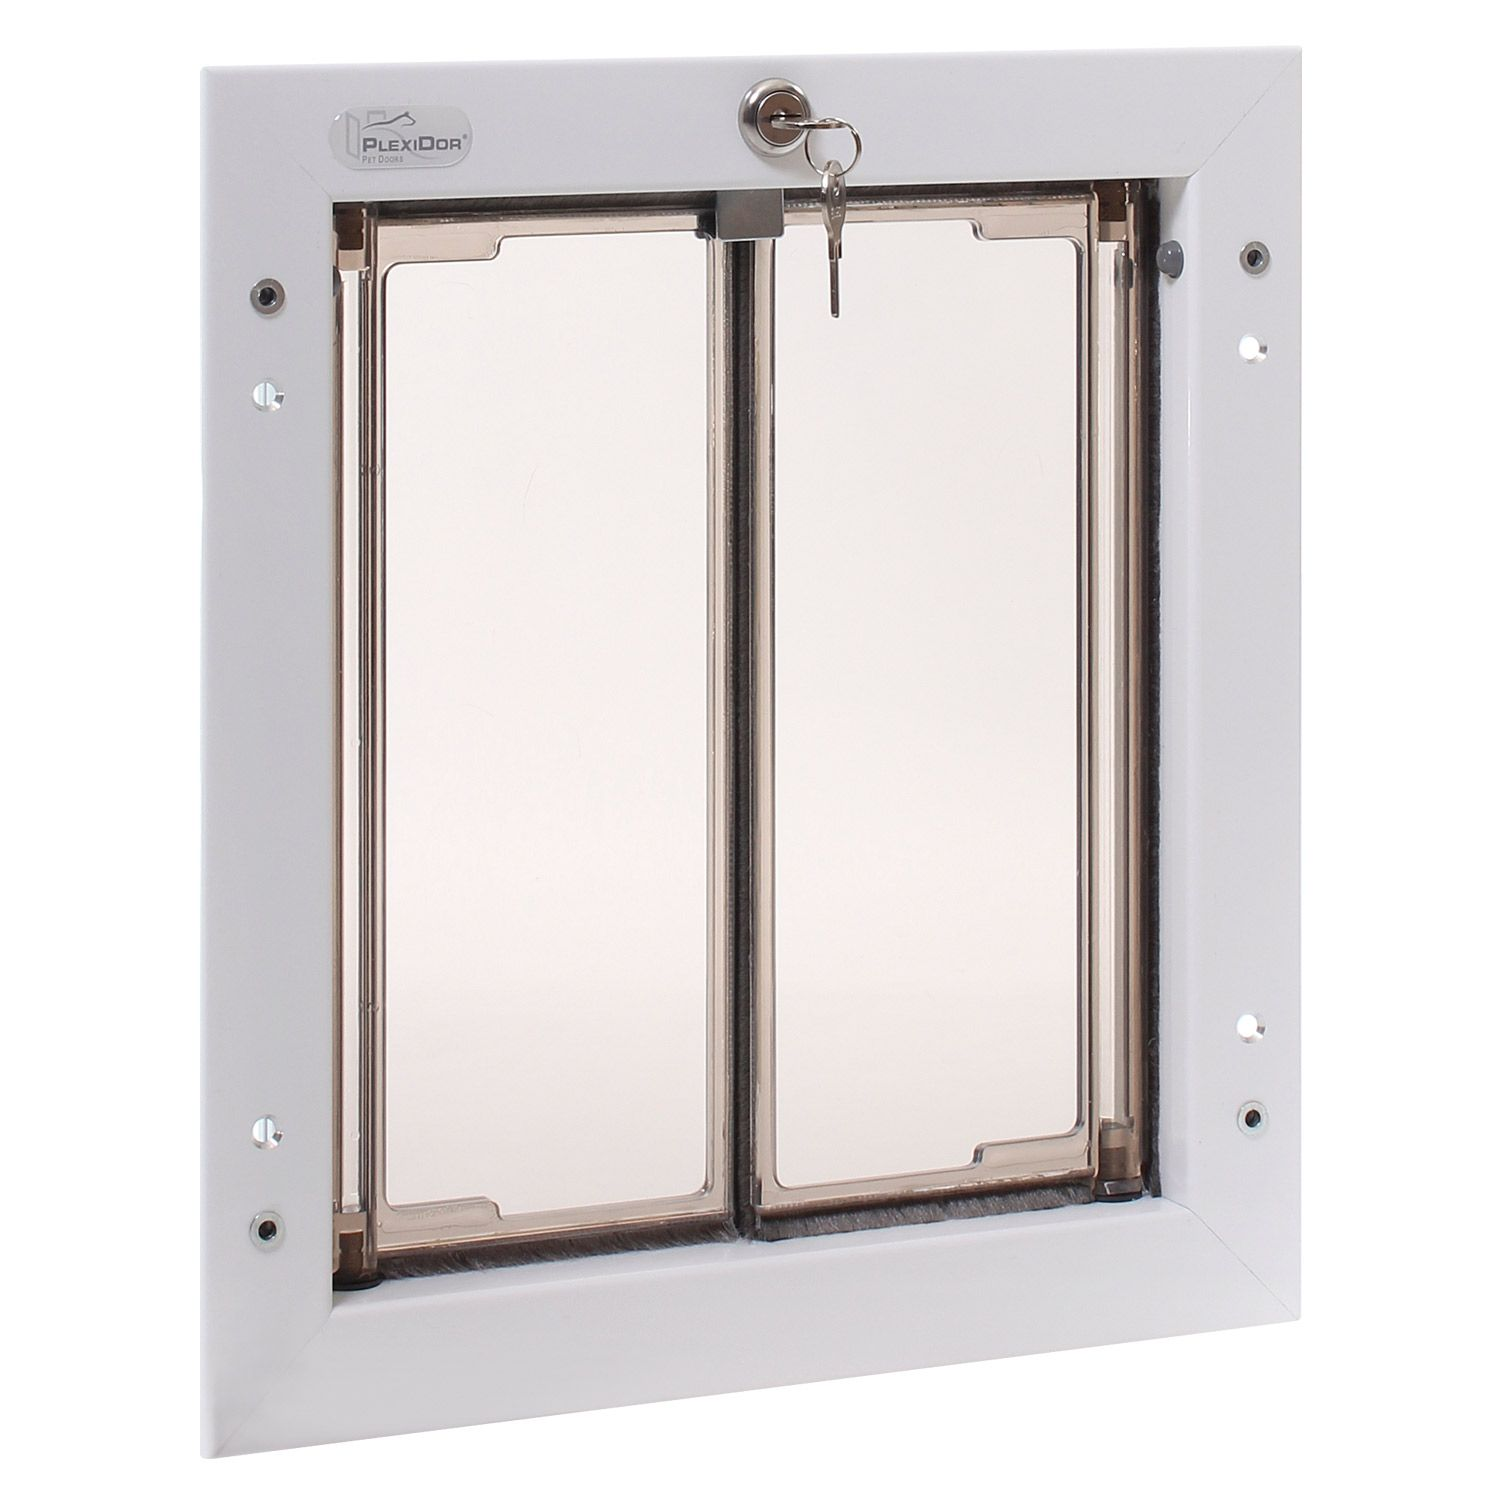 Plexidor Door Mount Pet In White Available At Petco